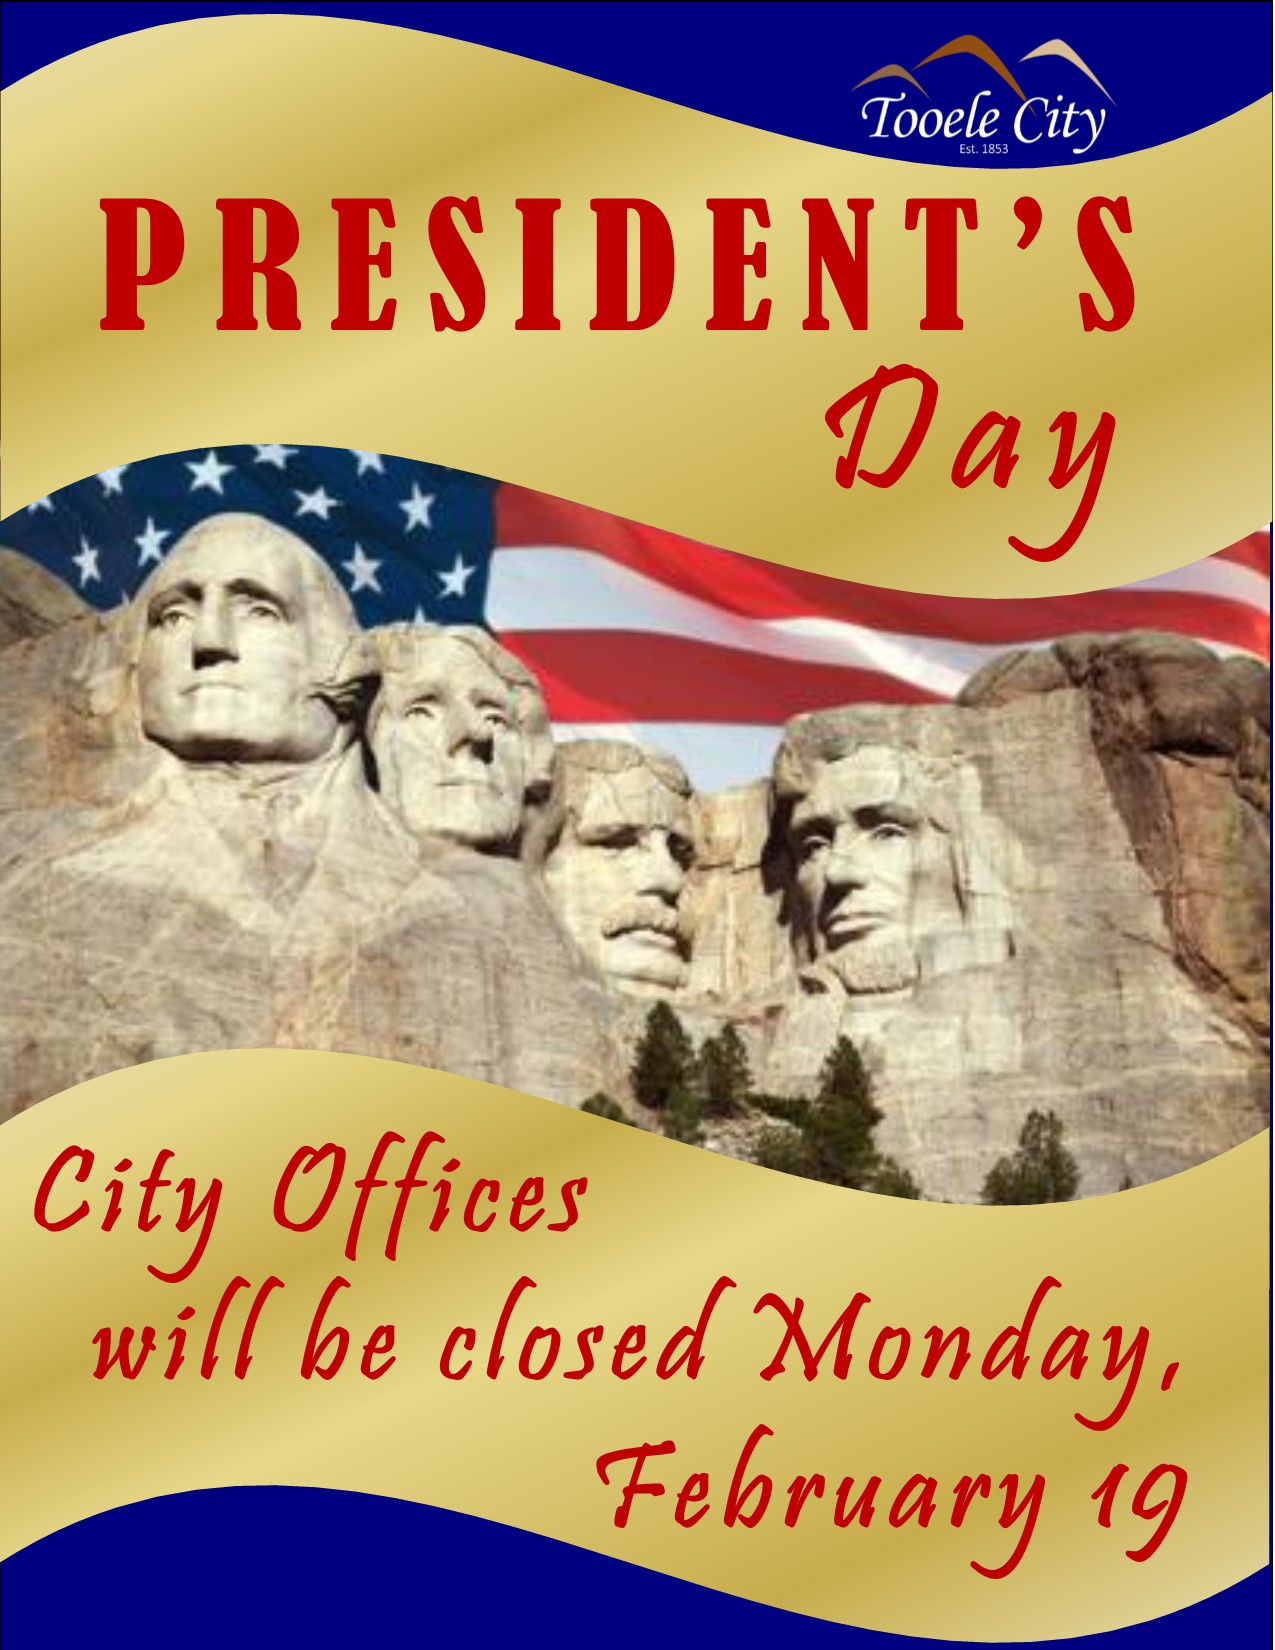 President's Day 2018 (City Offices)